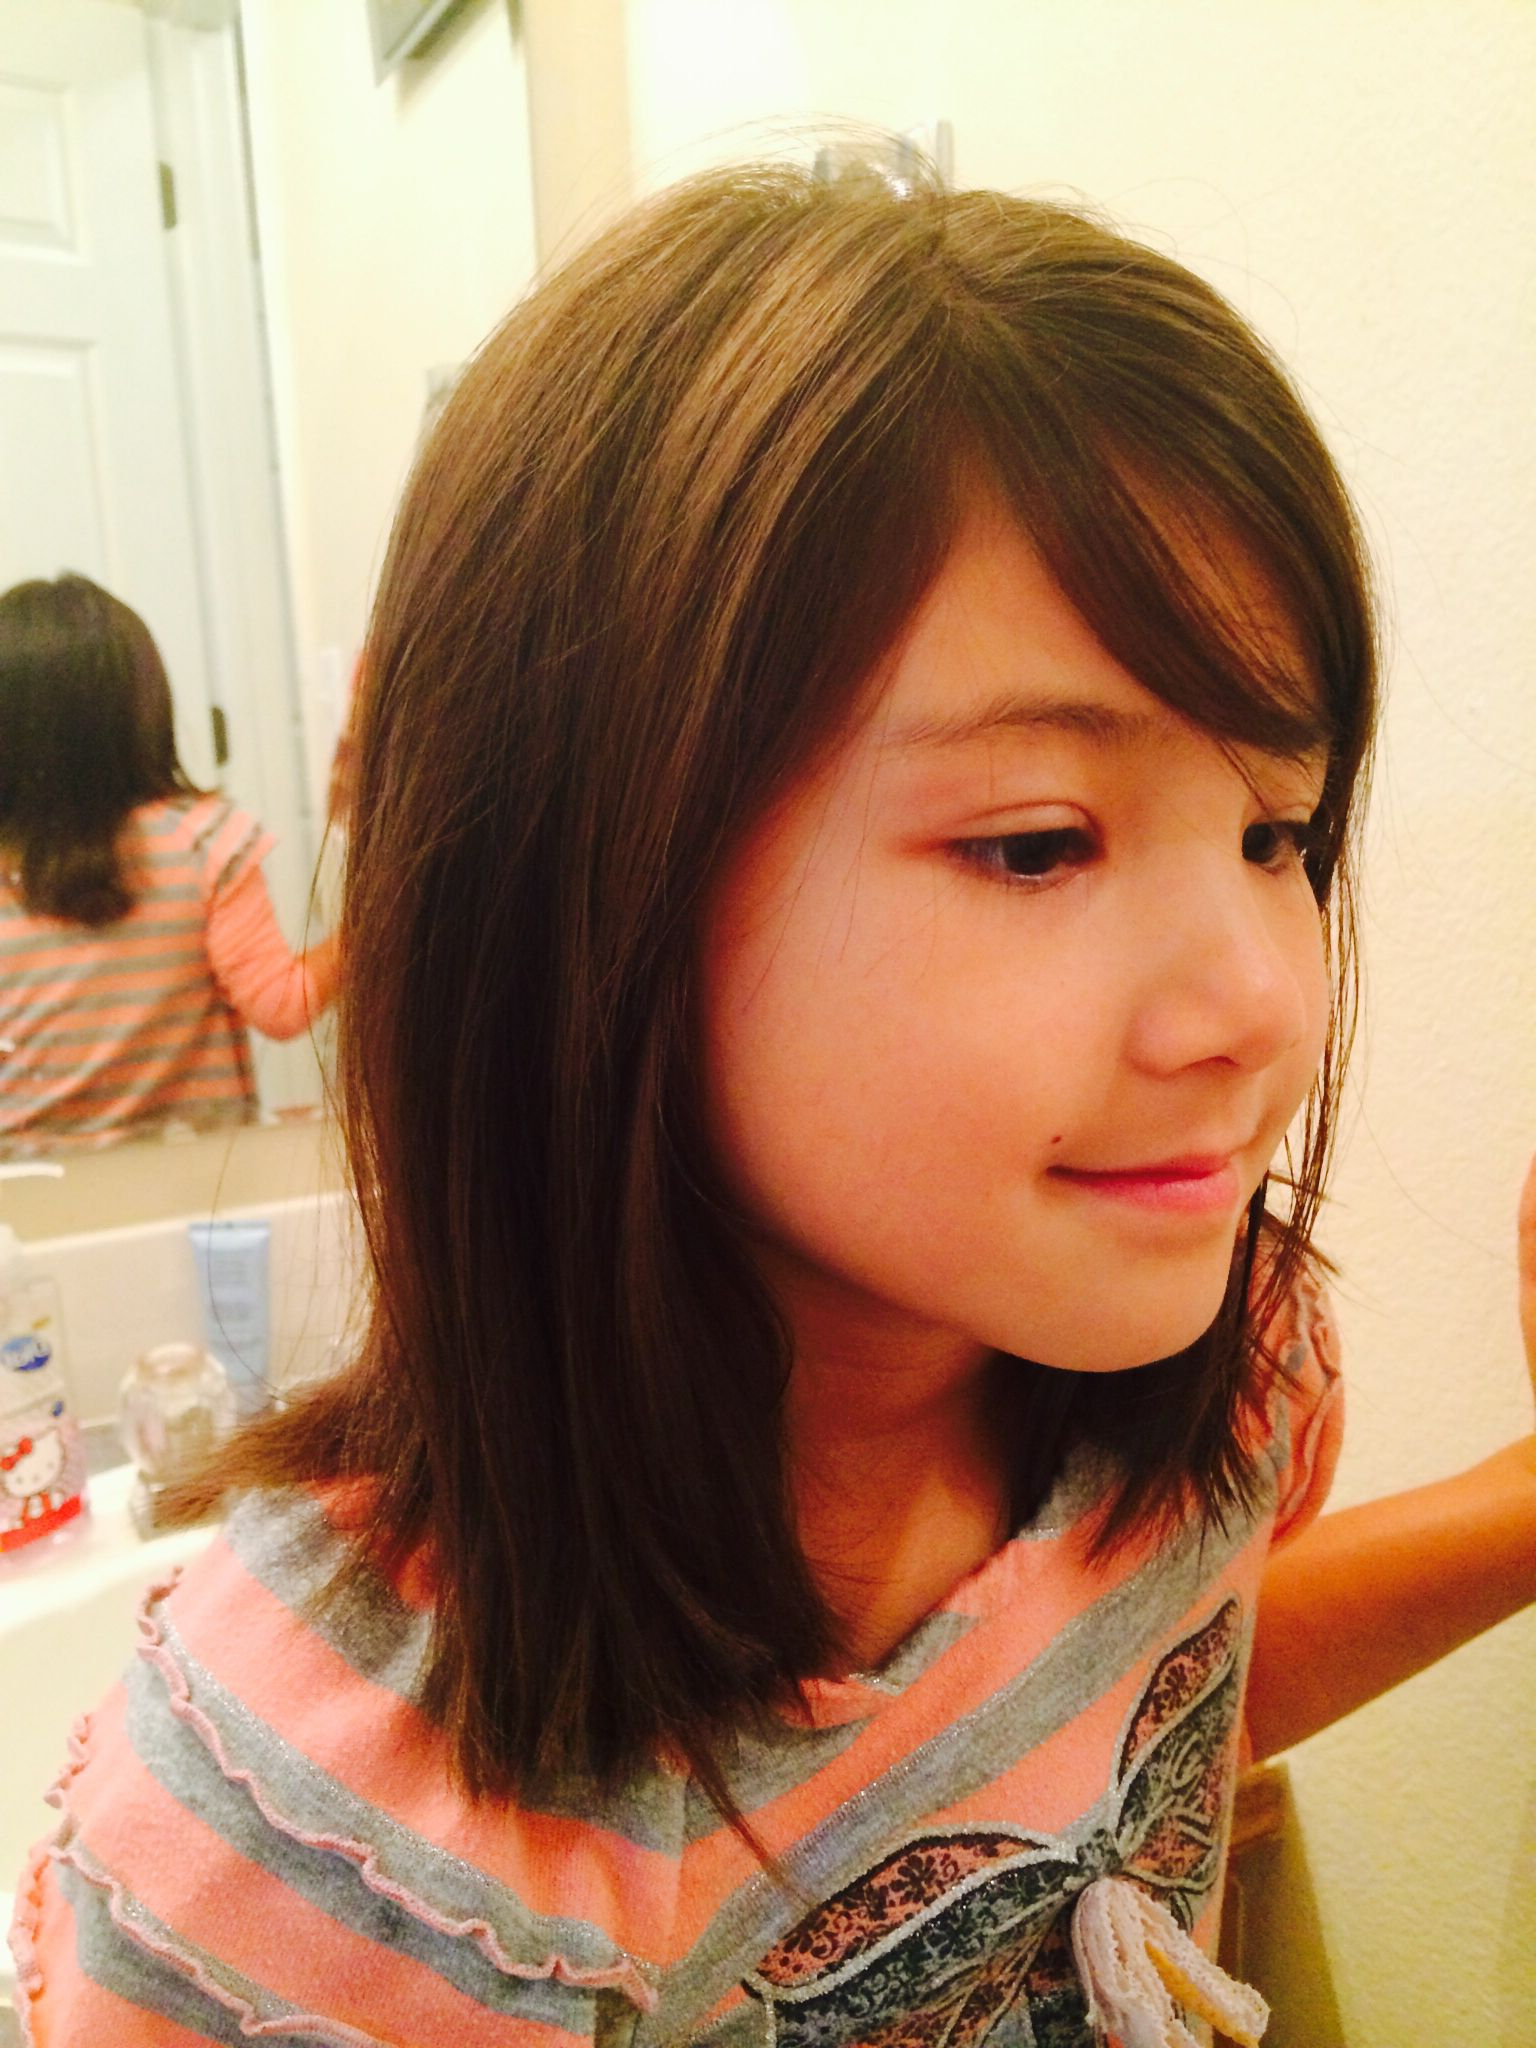 Hairstyles For Little Girls Intended For Well Known Kids Medium Haircuts With Bangs (View 8 of 20)